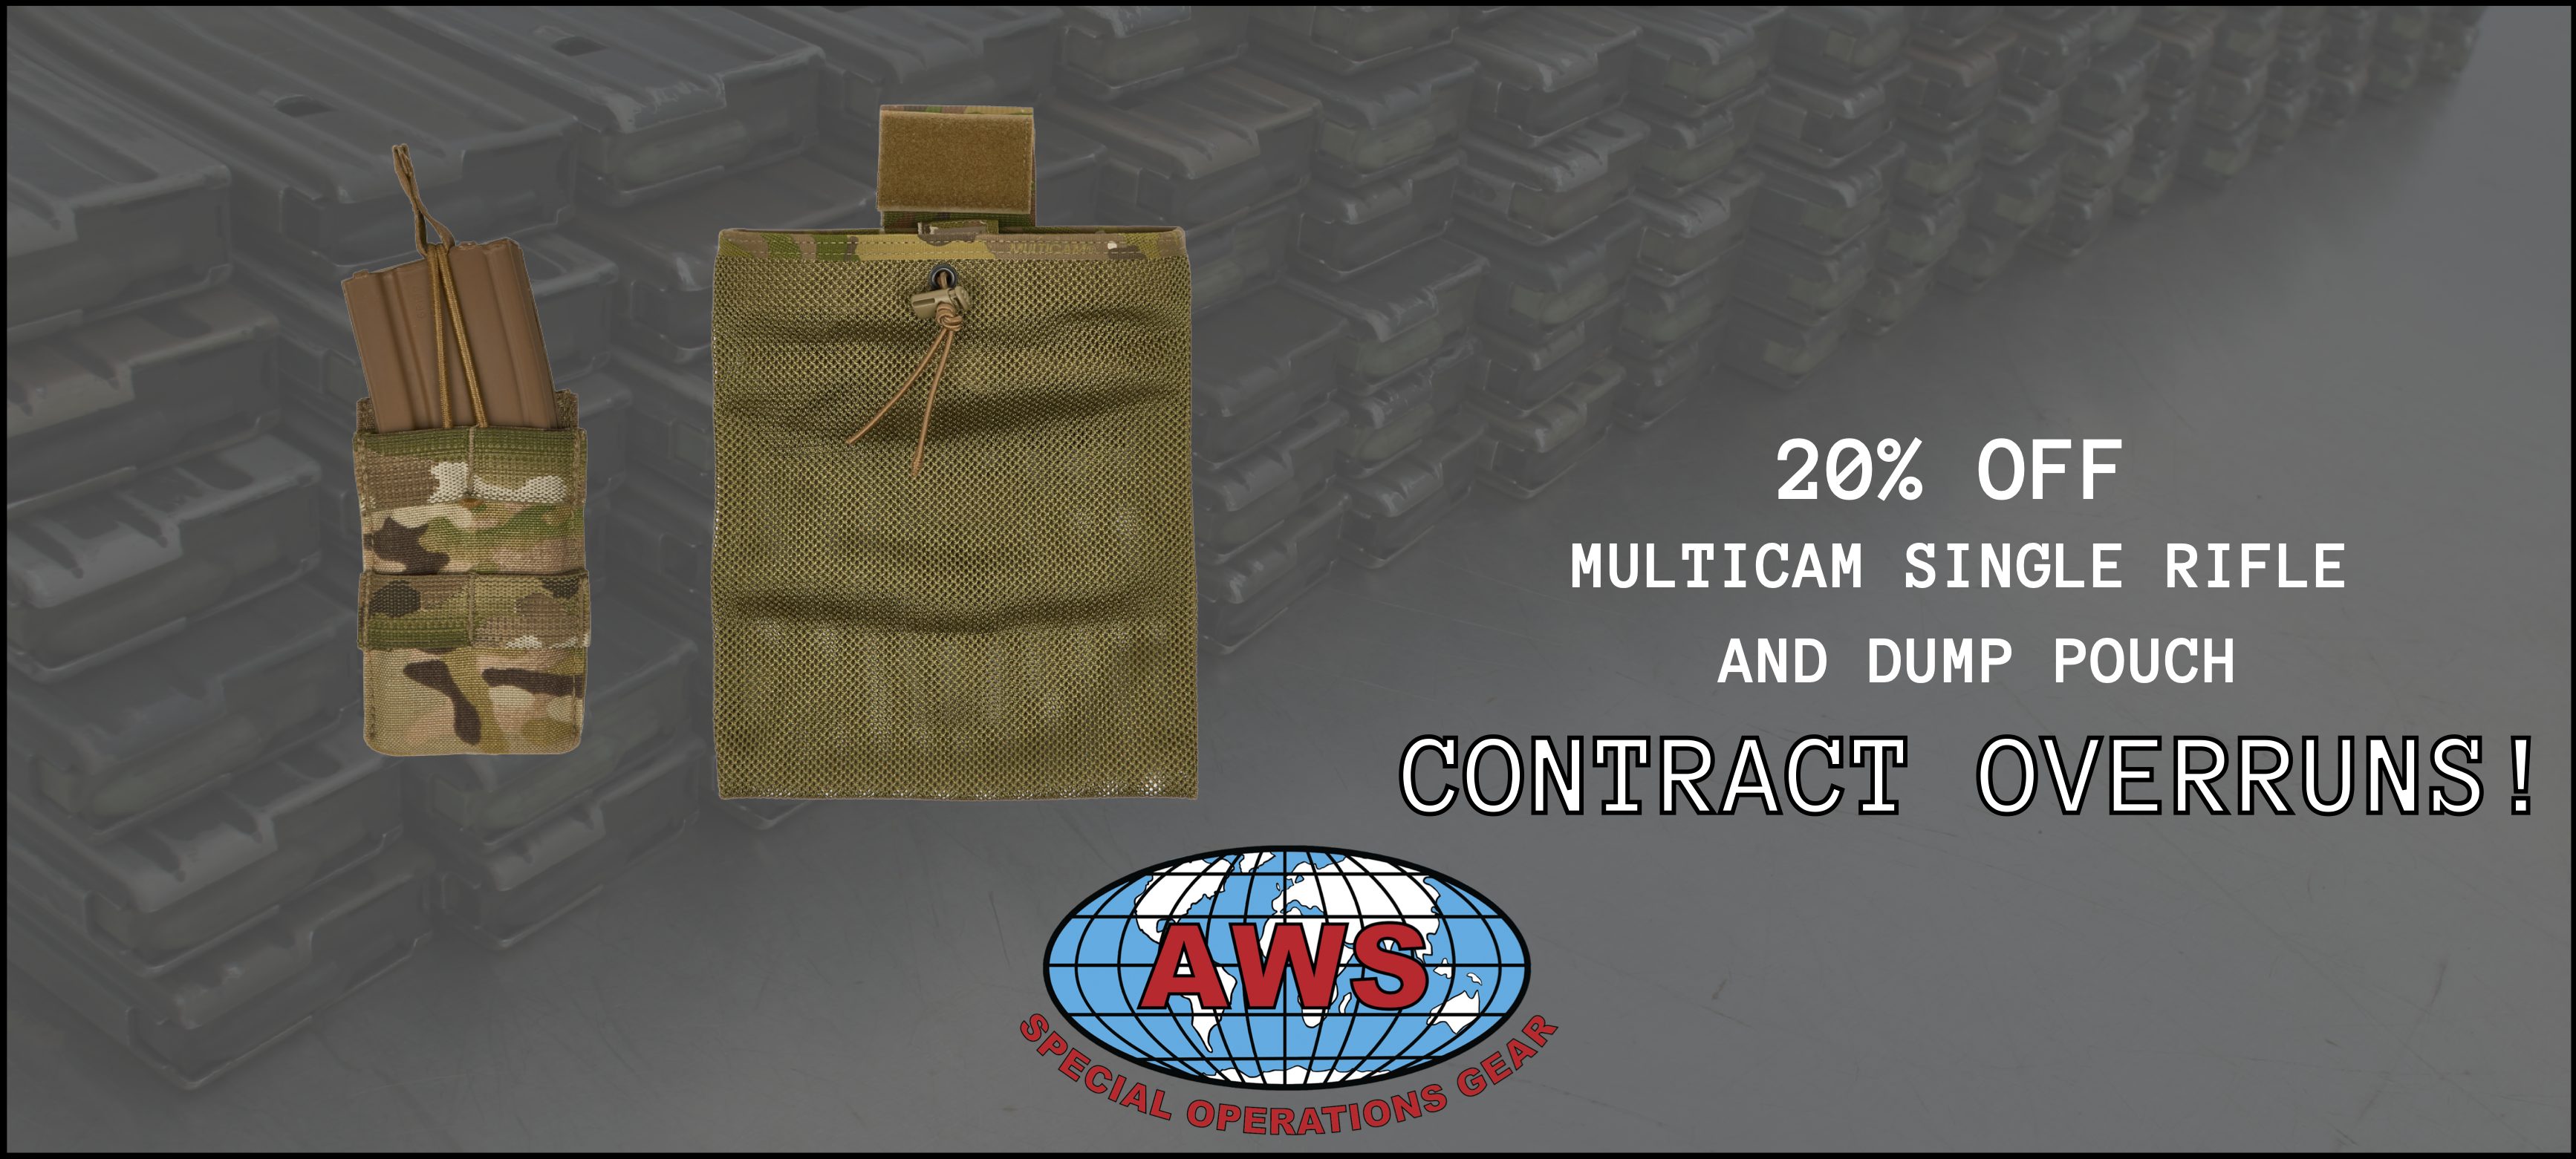 contract-overruns-banner-1.png